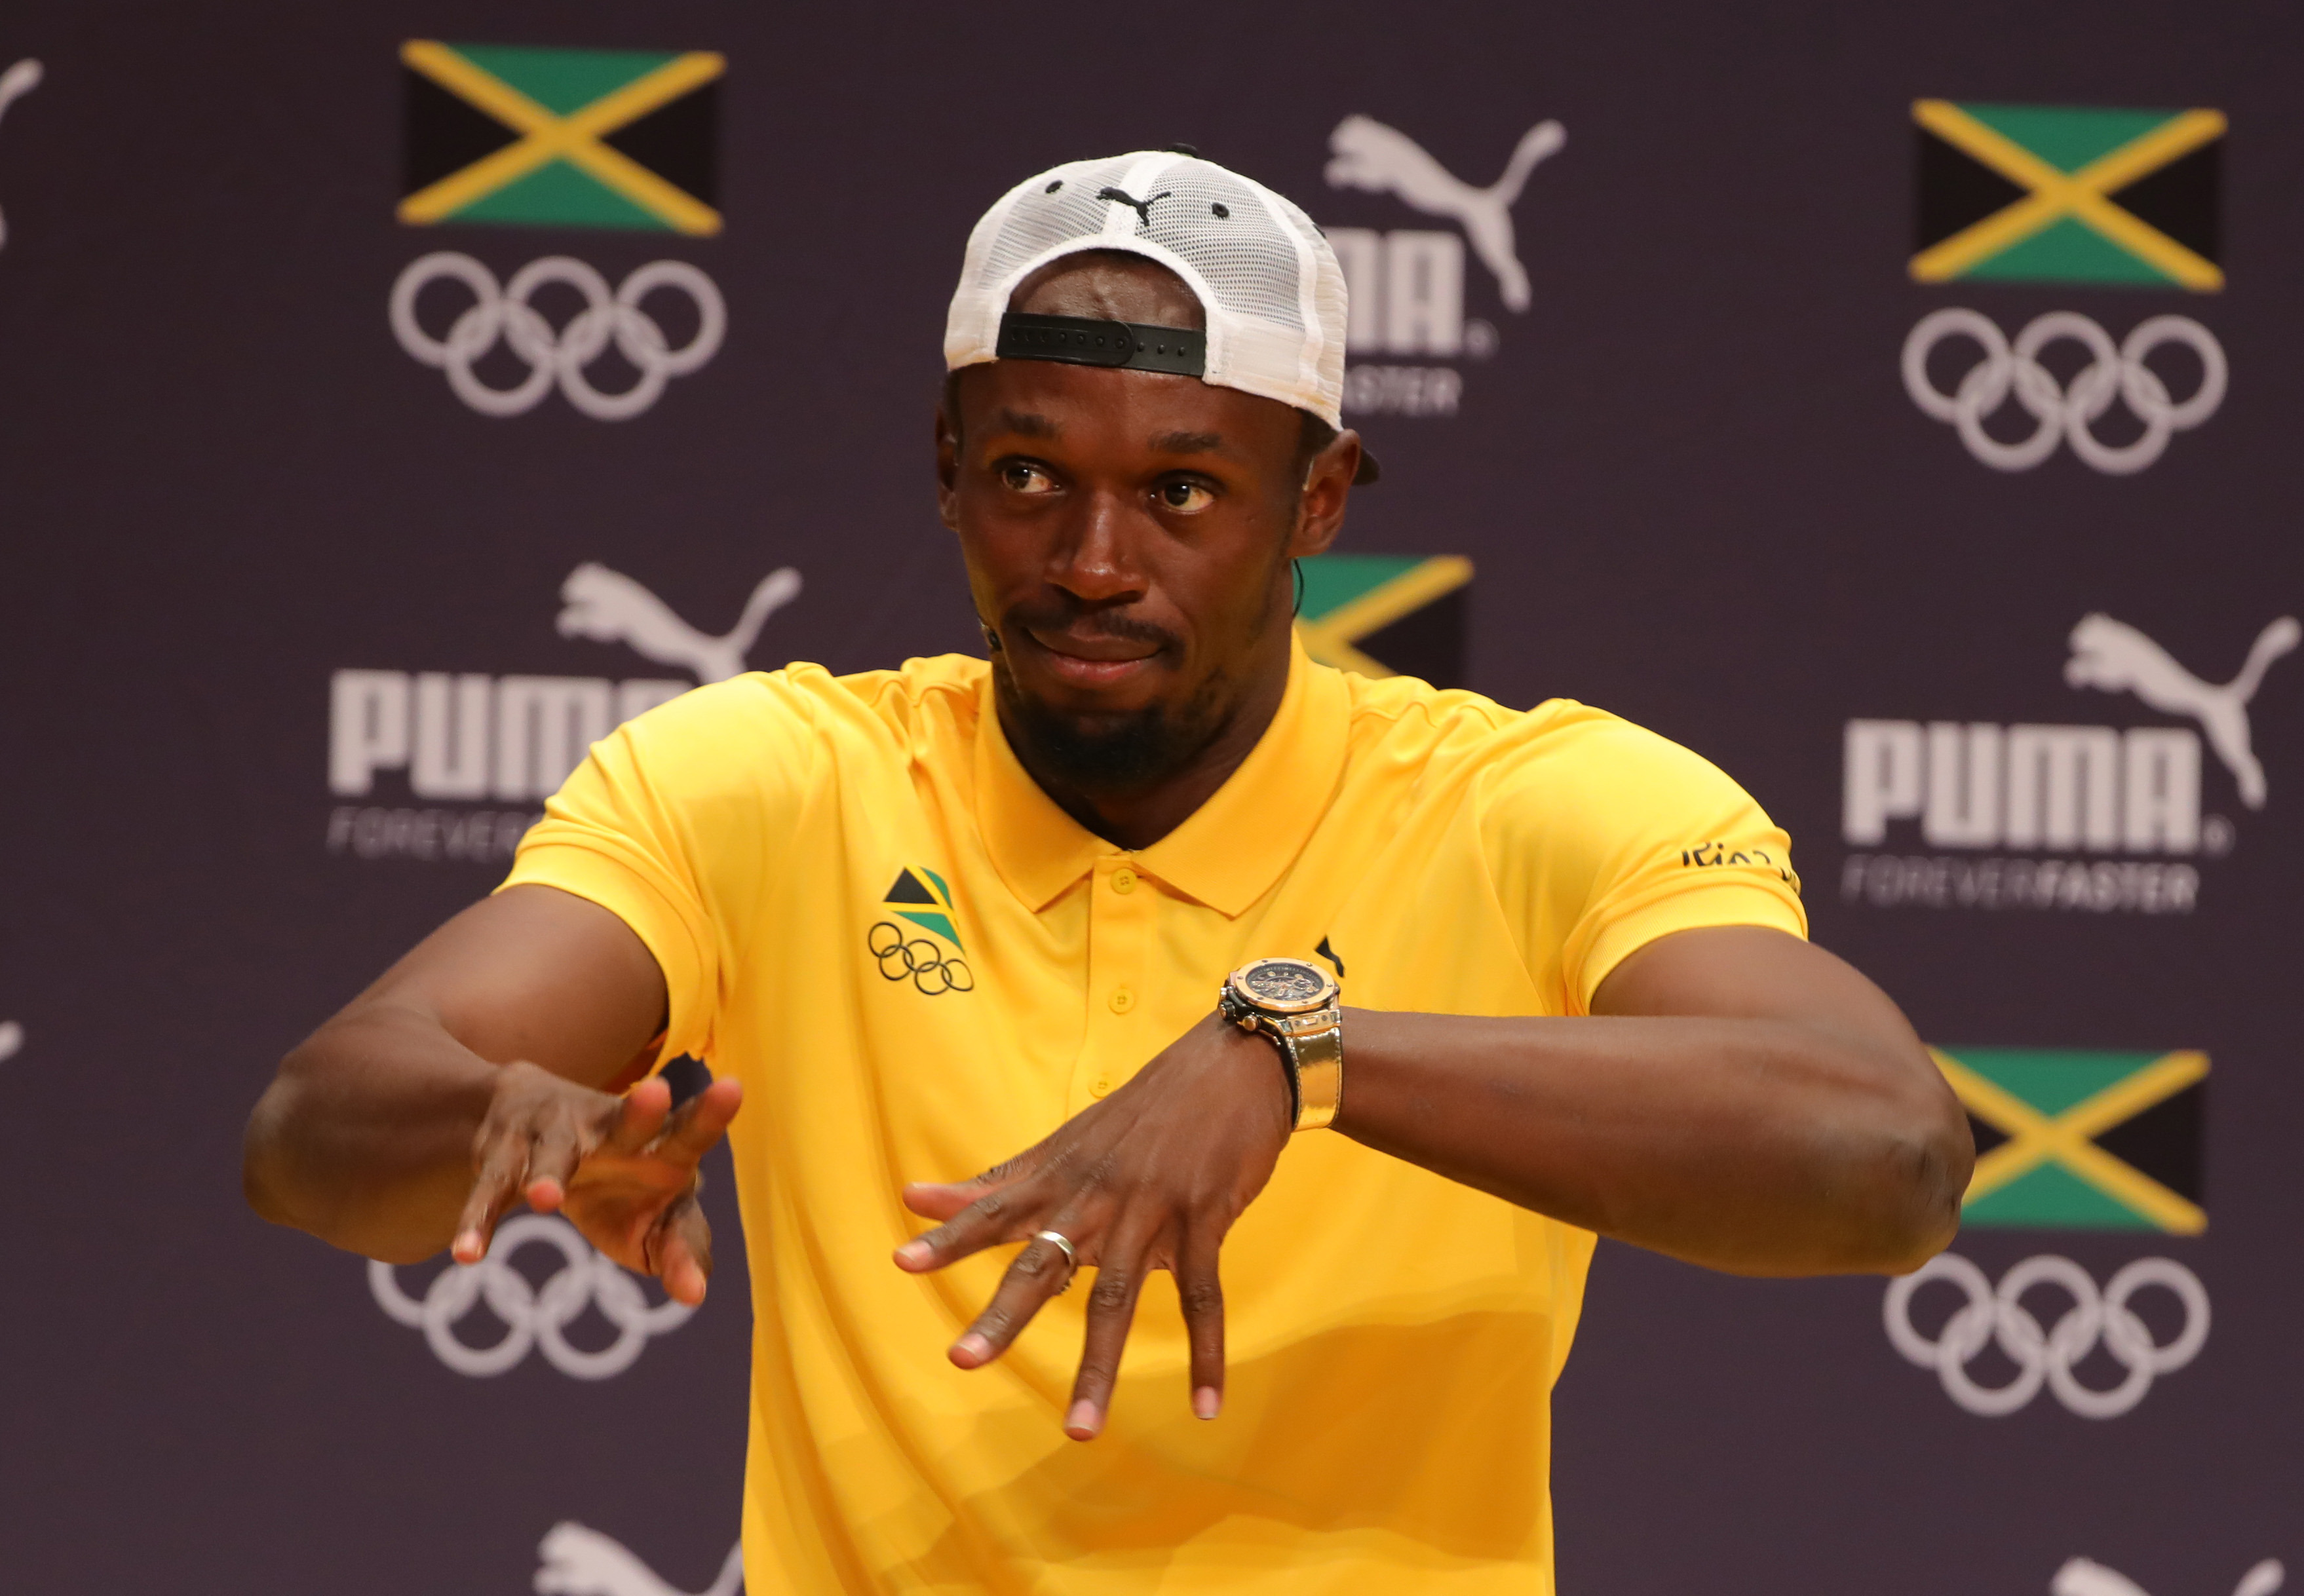 Athlete Usain Bolt of Jamaica attends a press conference of the Jamaican Olympic Association and PUMA in Barra during the Rio 2016 Olympic Games in Rio de Janeiro, on Aug. 6